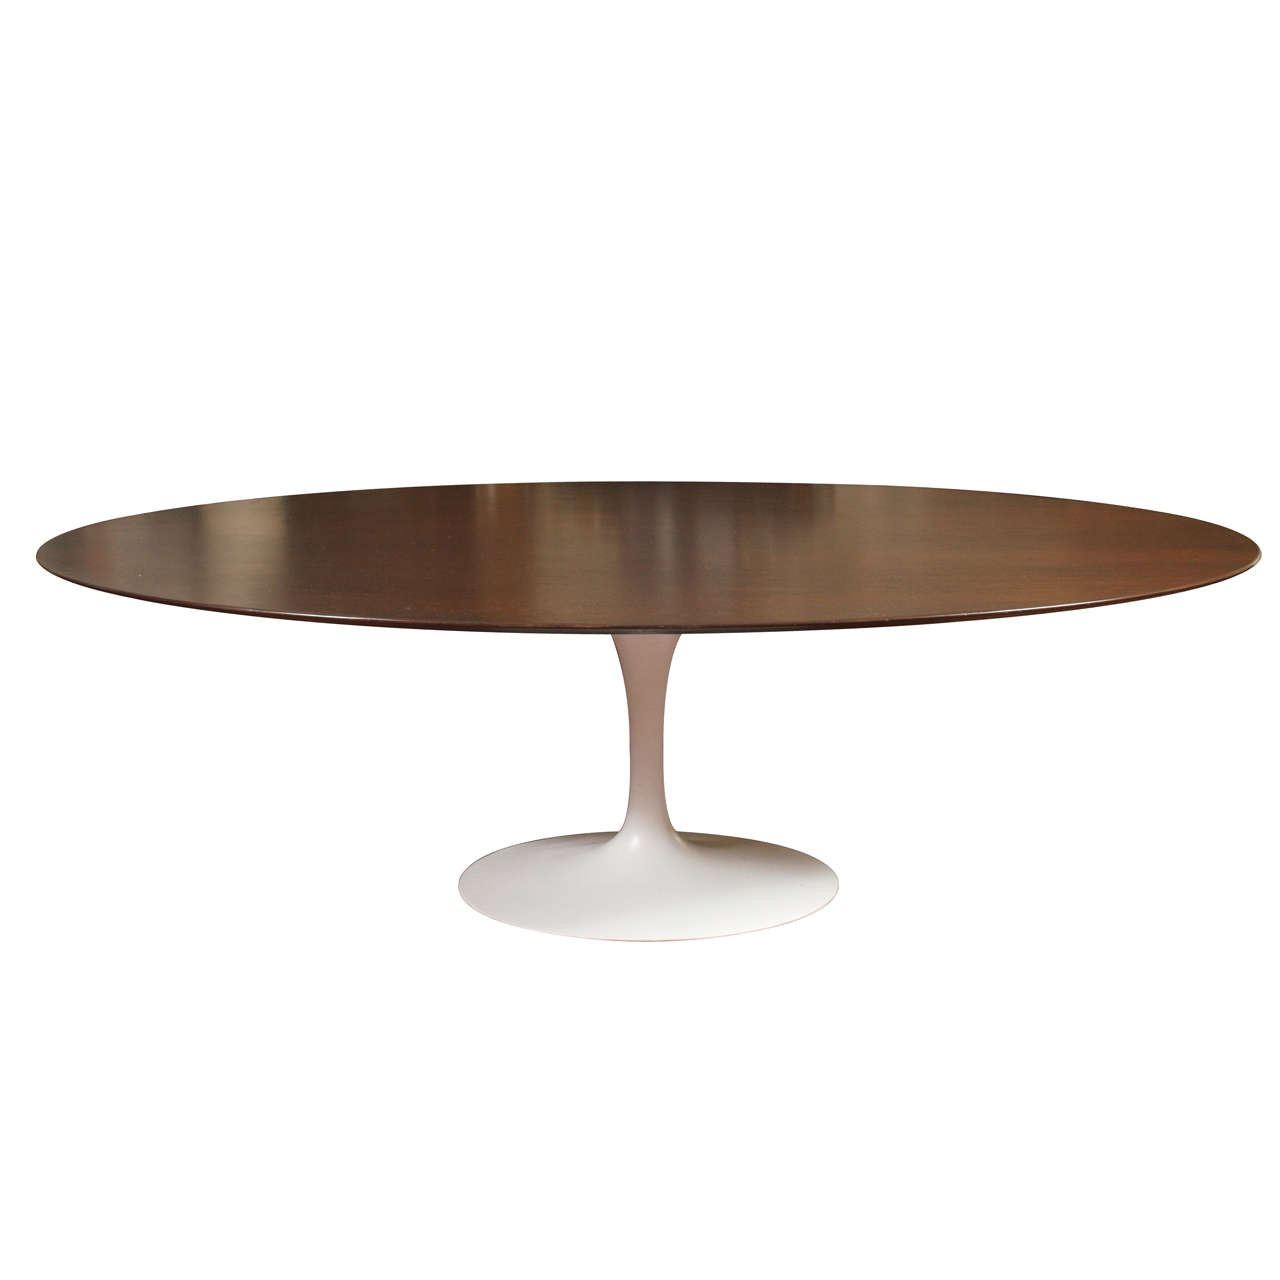 Best ideas about Oval Dining Table . Save or Pin Dining Table Saarinen Oval Dining Table Knoll Now.